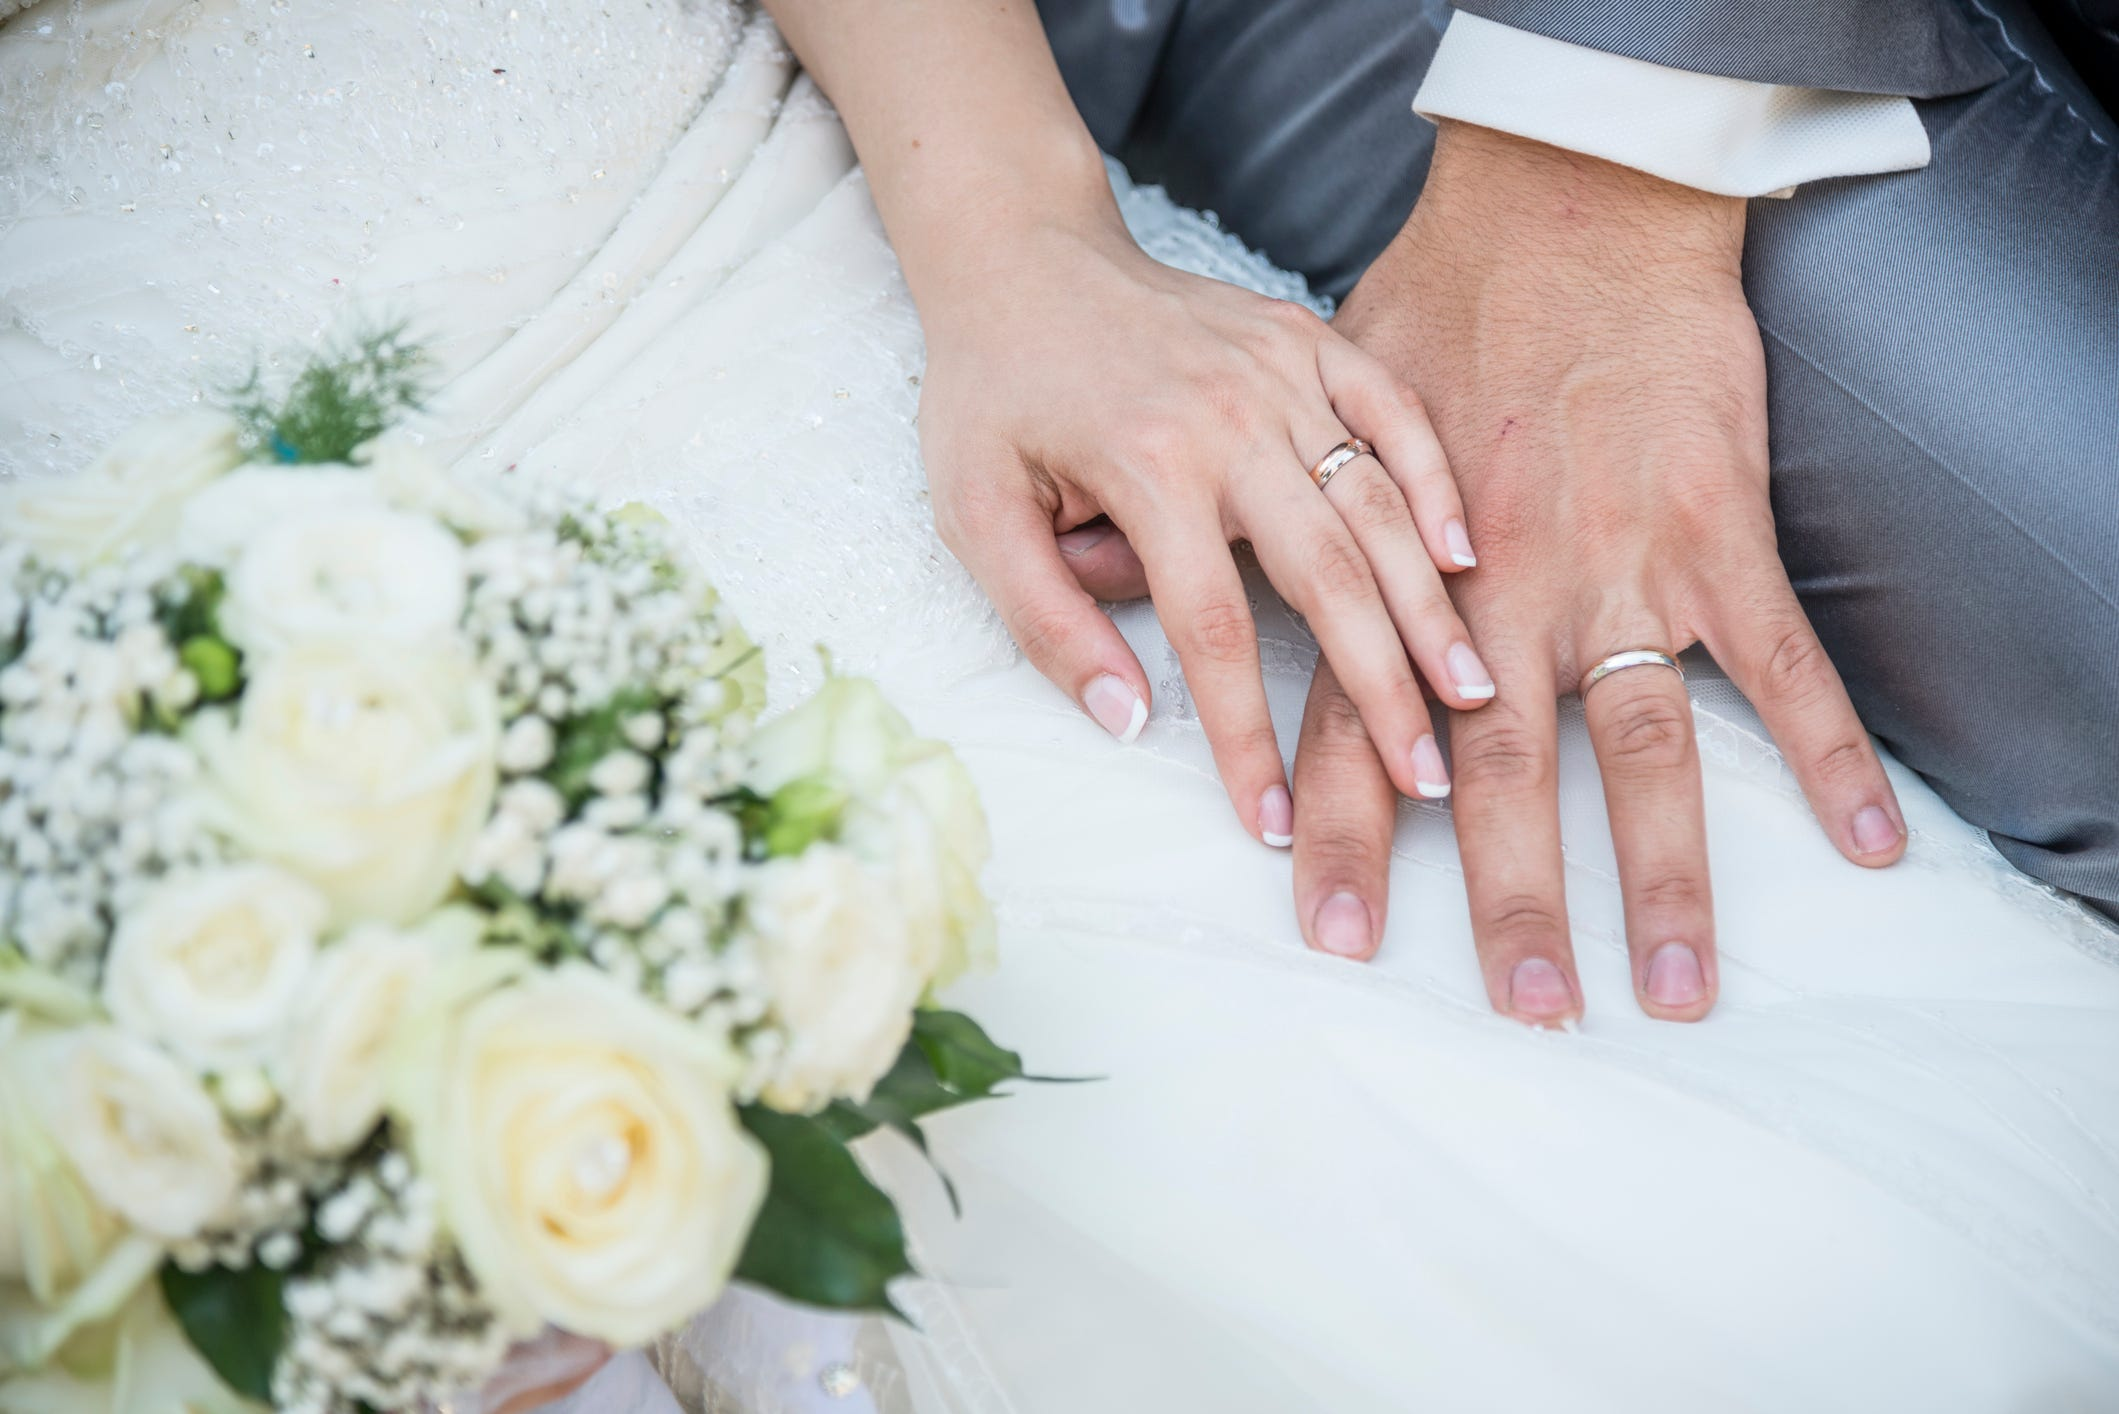 Marriage a sexist institution? Experts say yes, but we can change it.